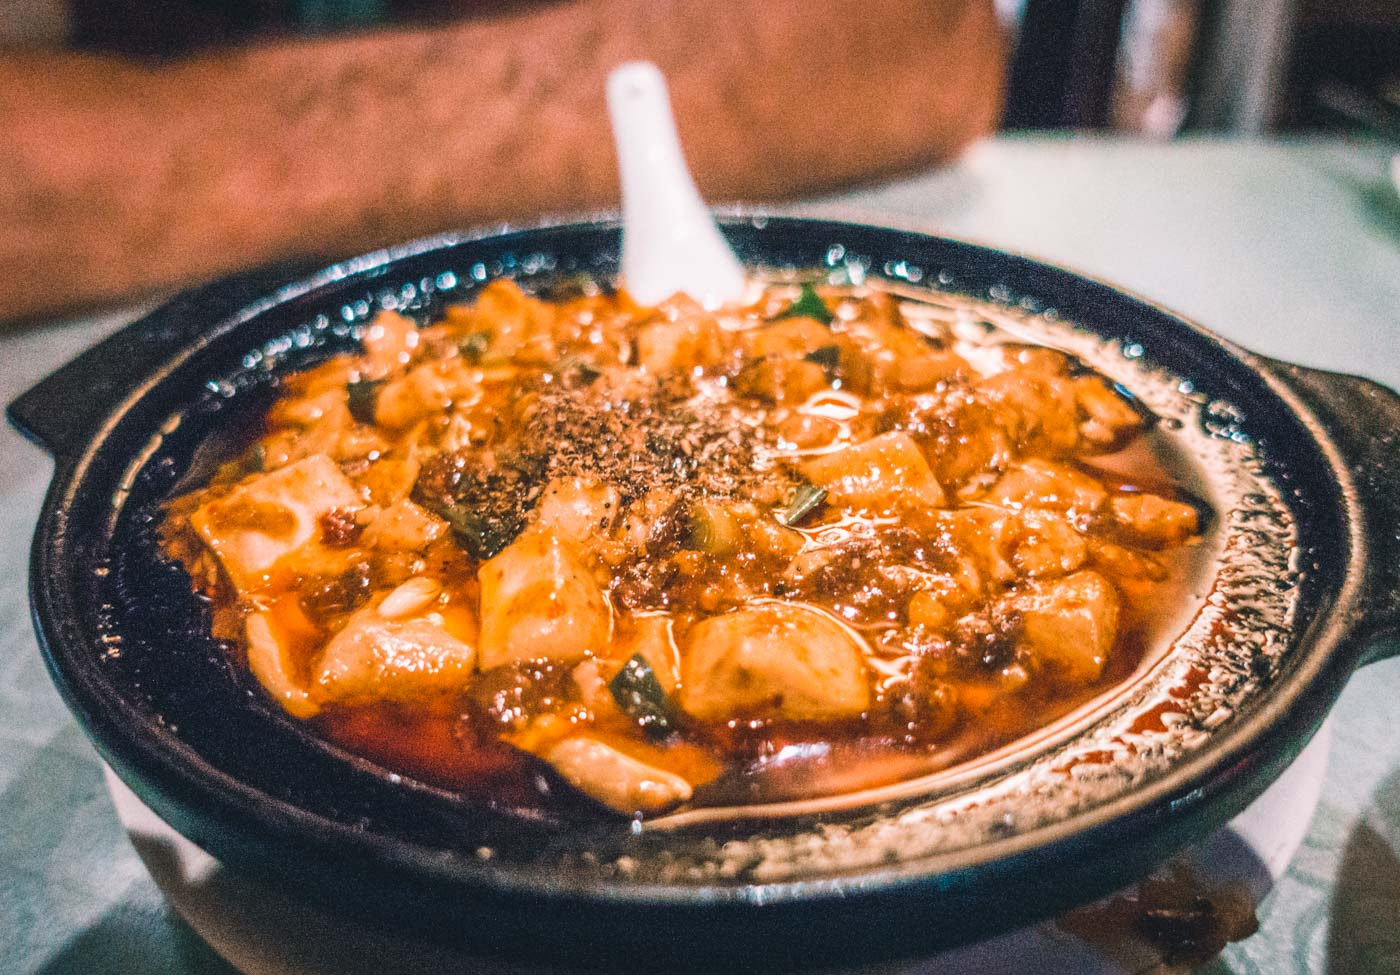 Mapu Doufu (Mapo Tofu), one of Sichuan's best local dish